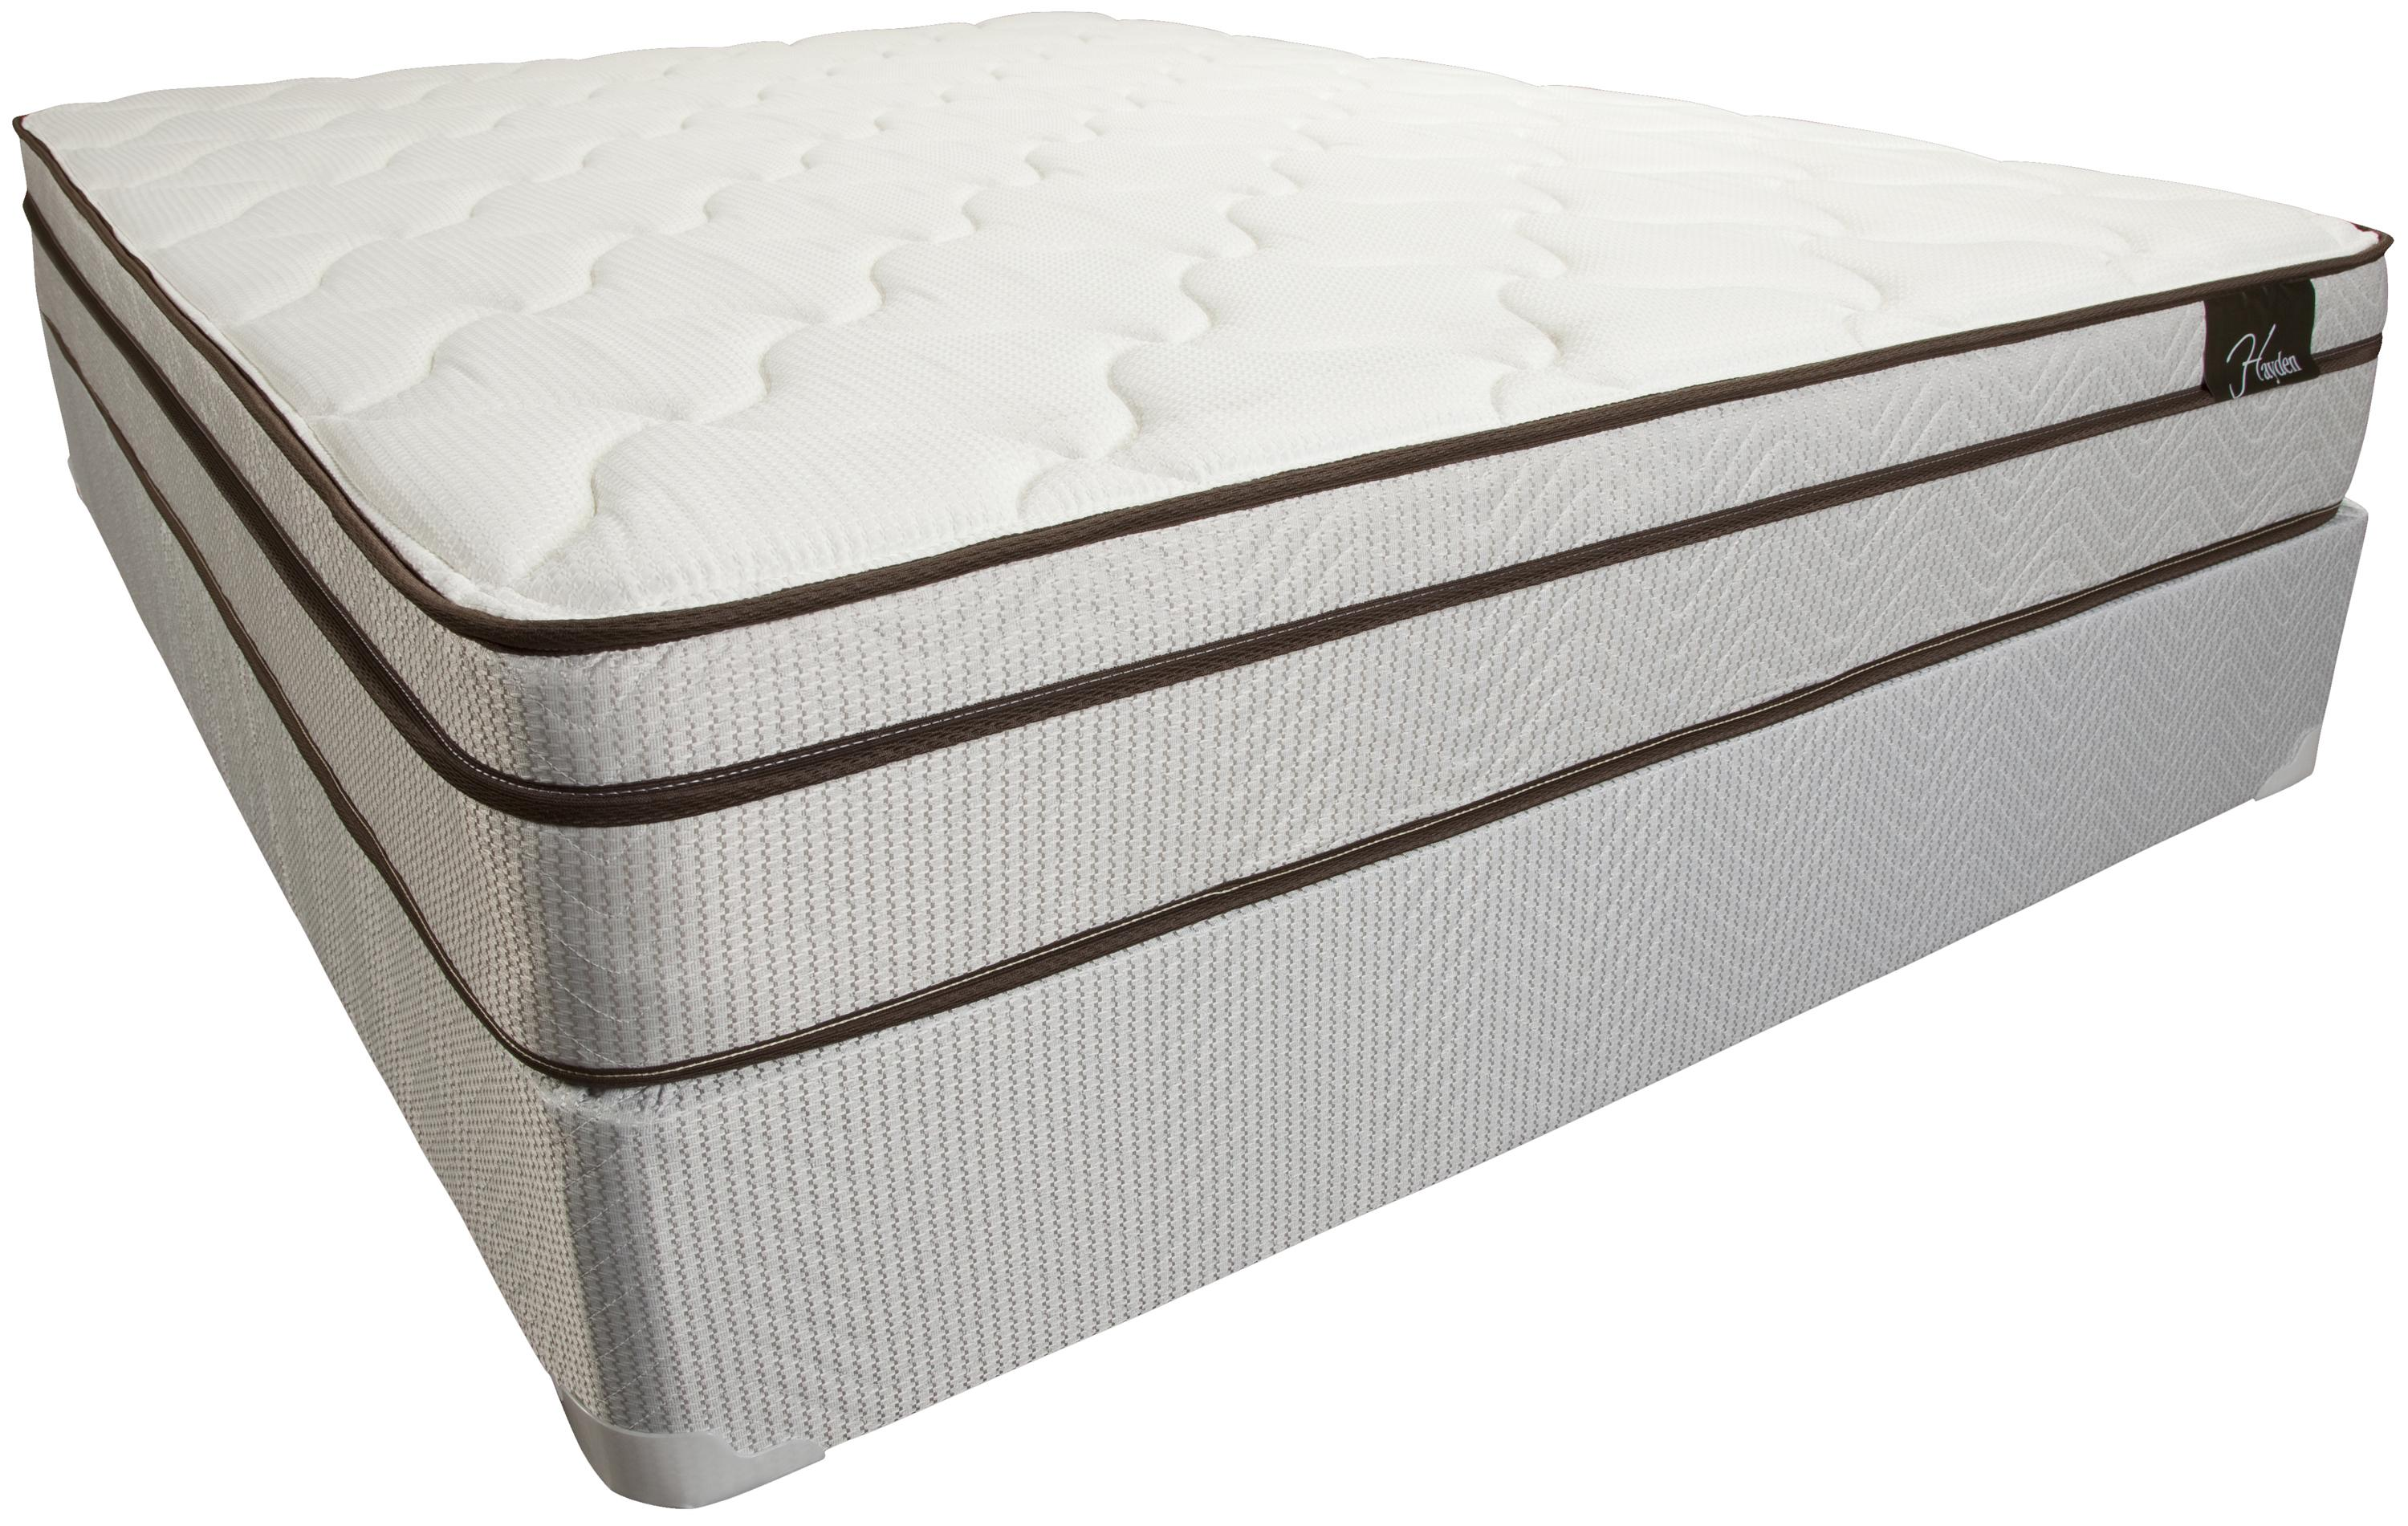 Sleep XPressions Hayden Queen Euro Top Mattress Set by Southerland Bedding Co. at Wilcox Furniture